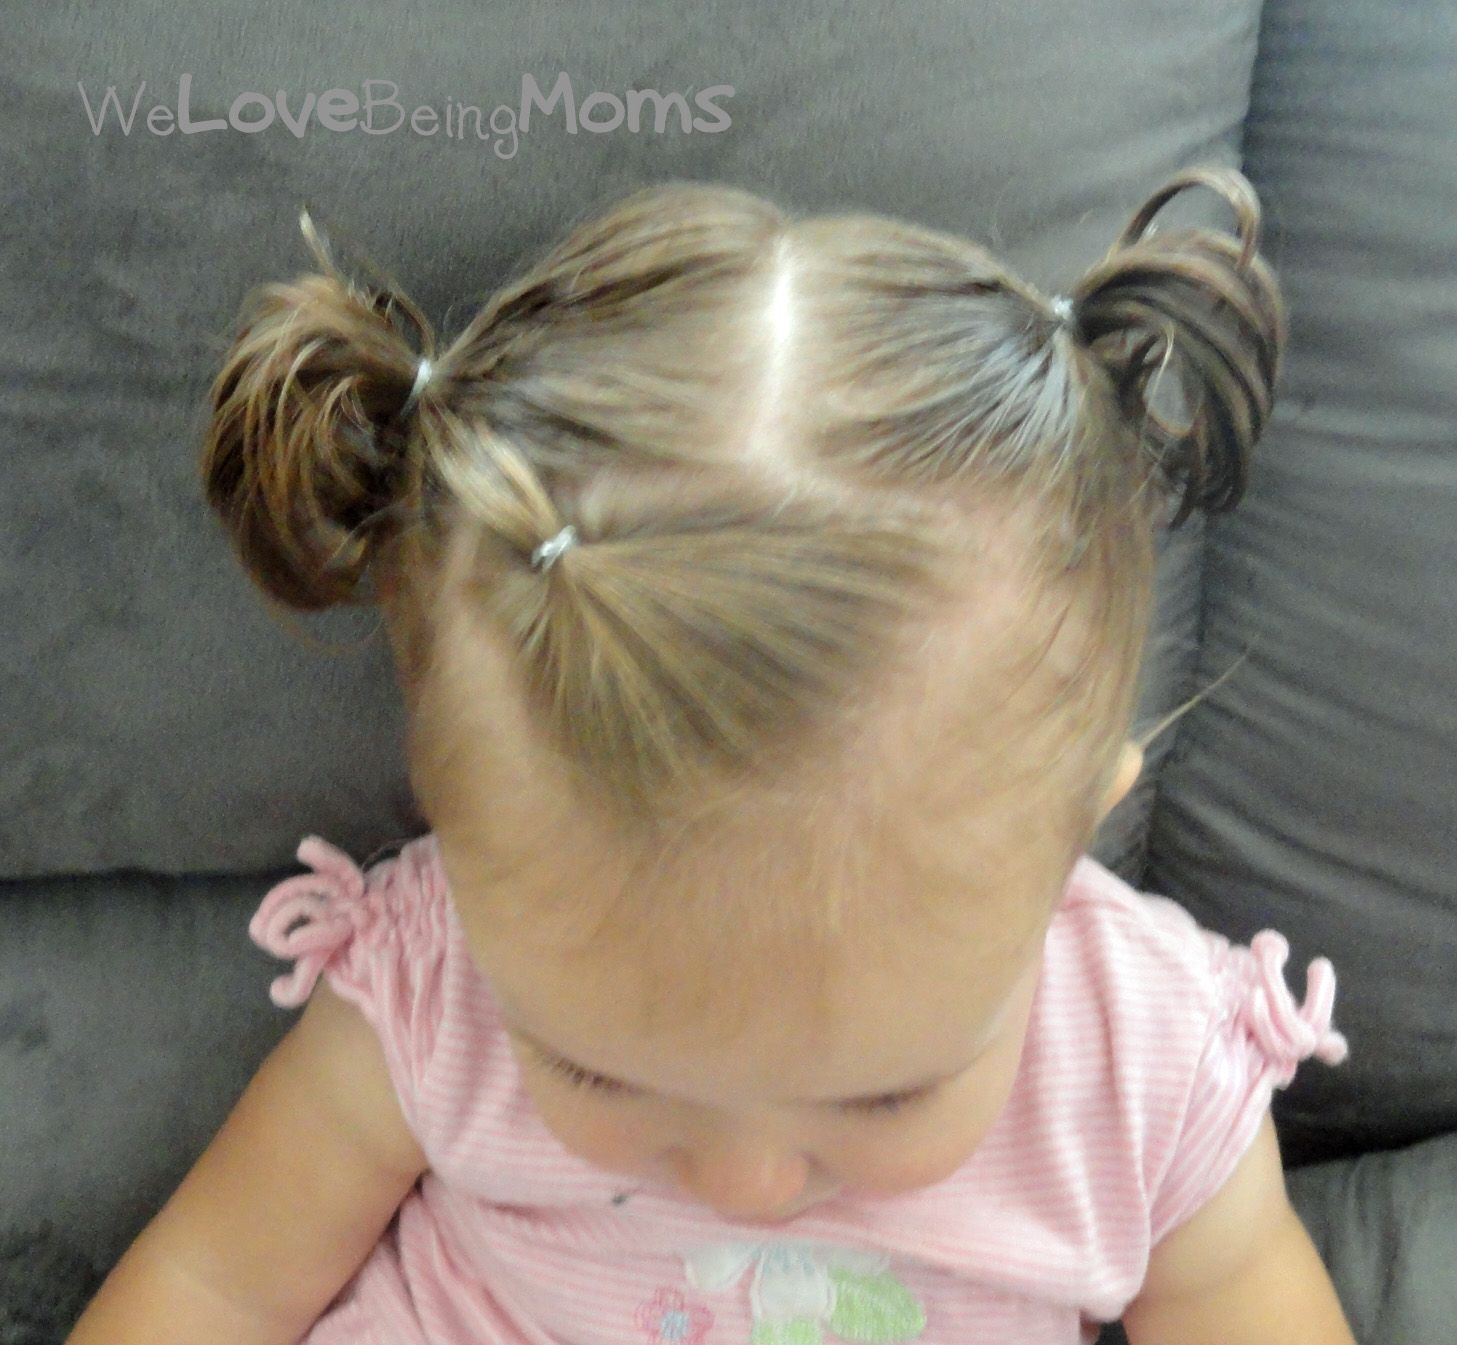 best 25+ toddler girl hair ideas on pinterest | baby girl hair